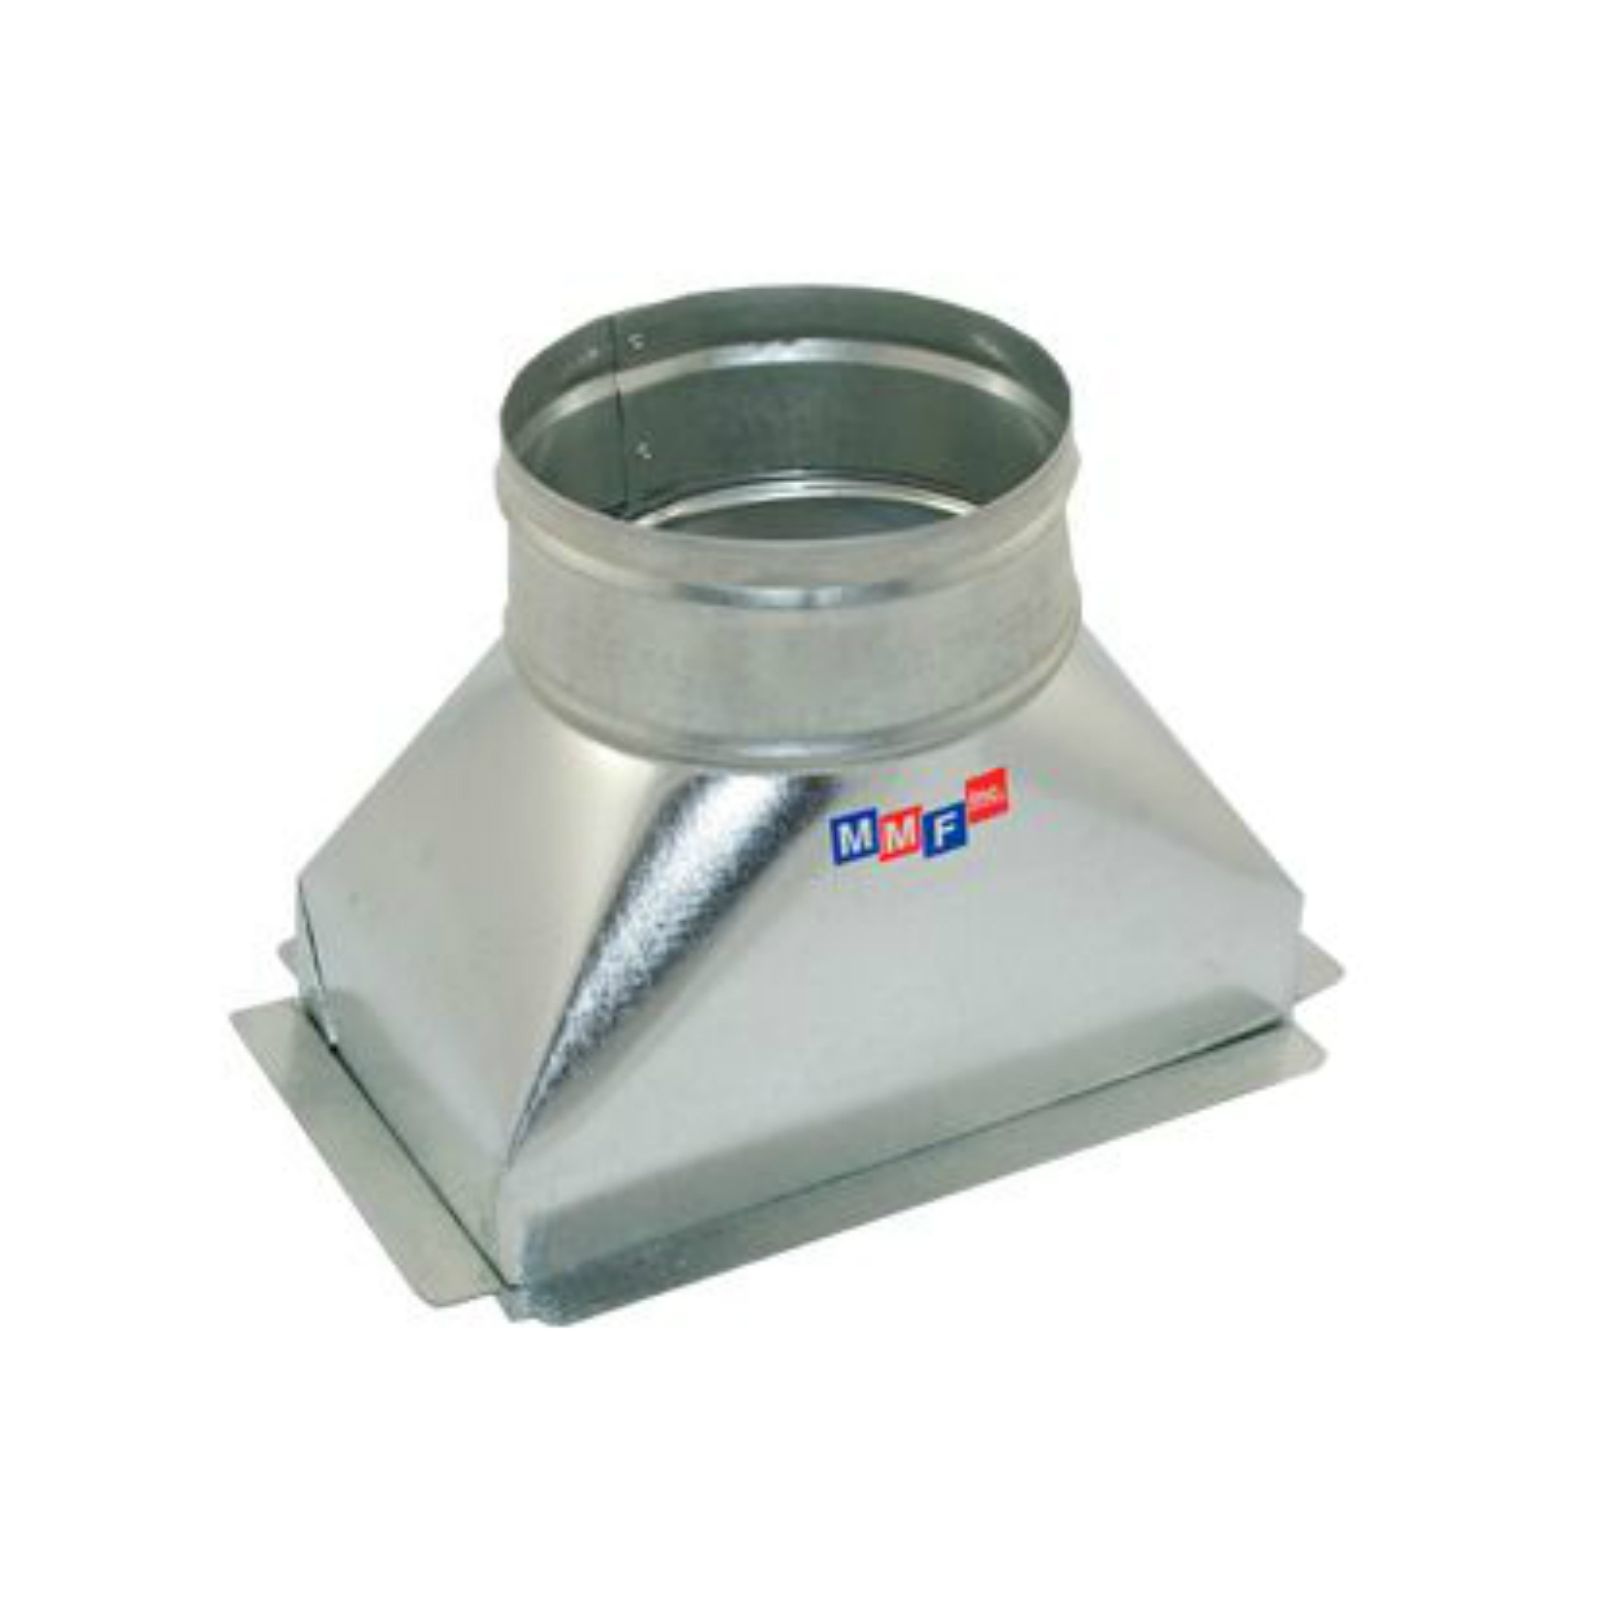 "Modular Metal BTSFG100606P - Sealed Floor Box - 30 Gauge - With Plaster Ground Flange 10"" X 06"" To 06"" Round"